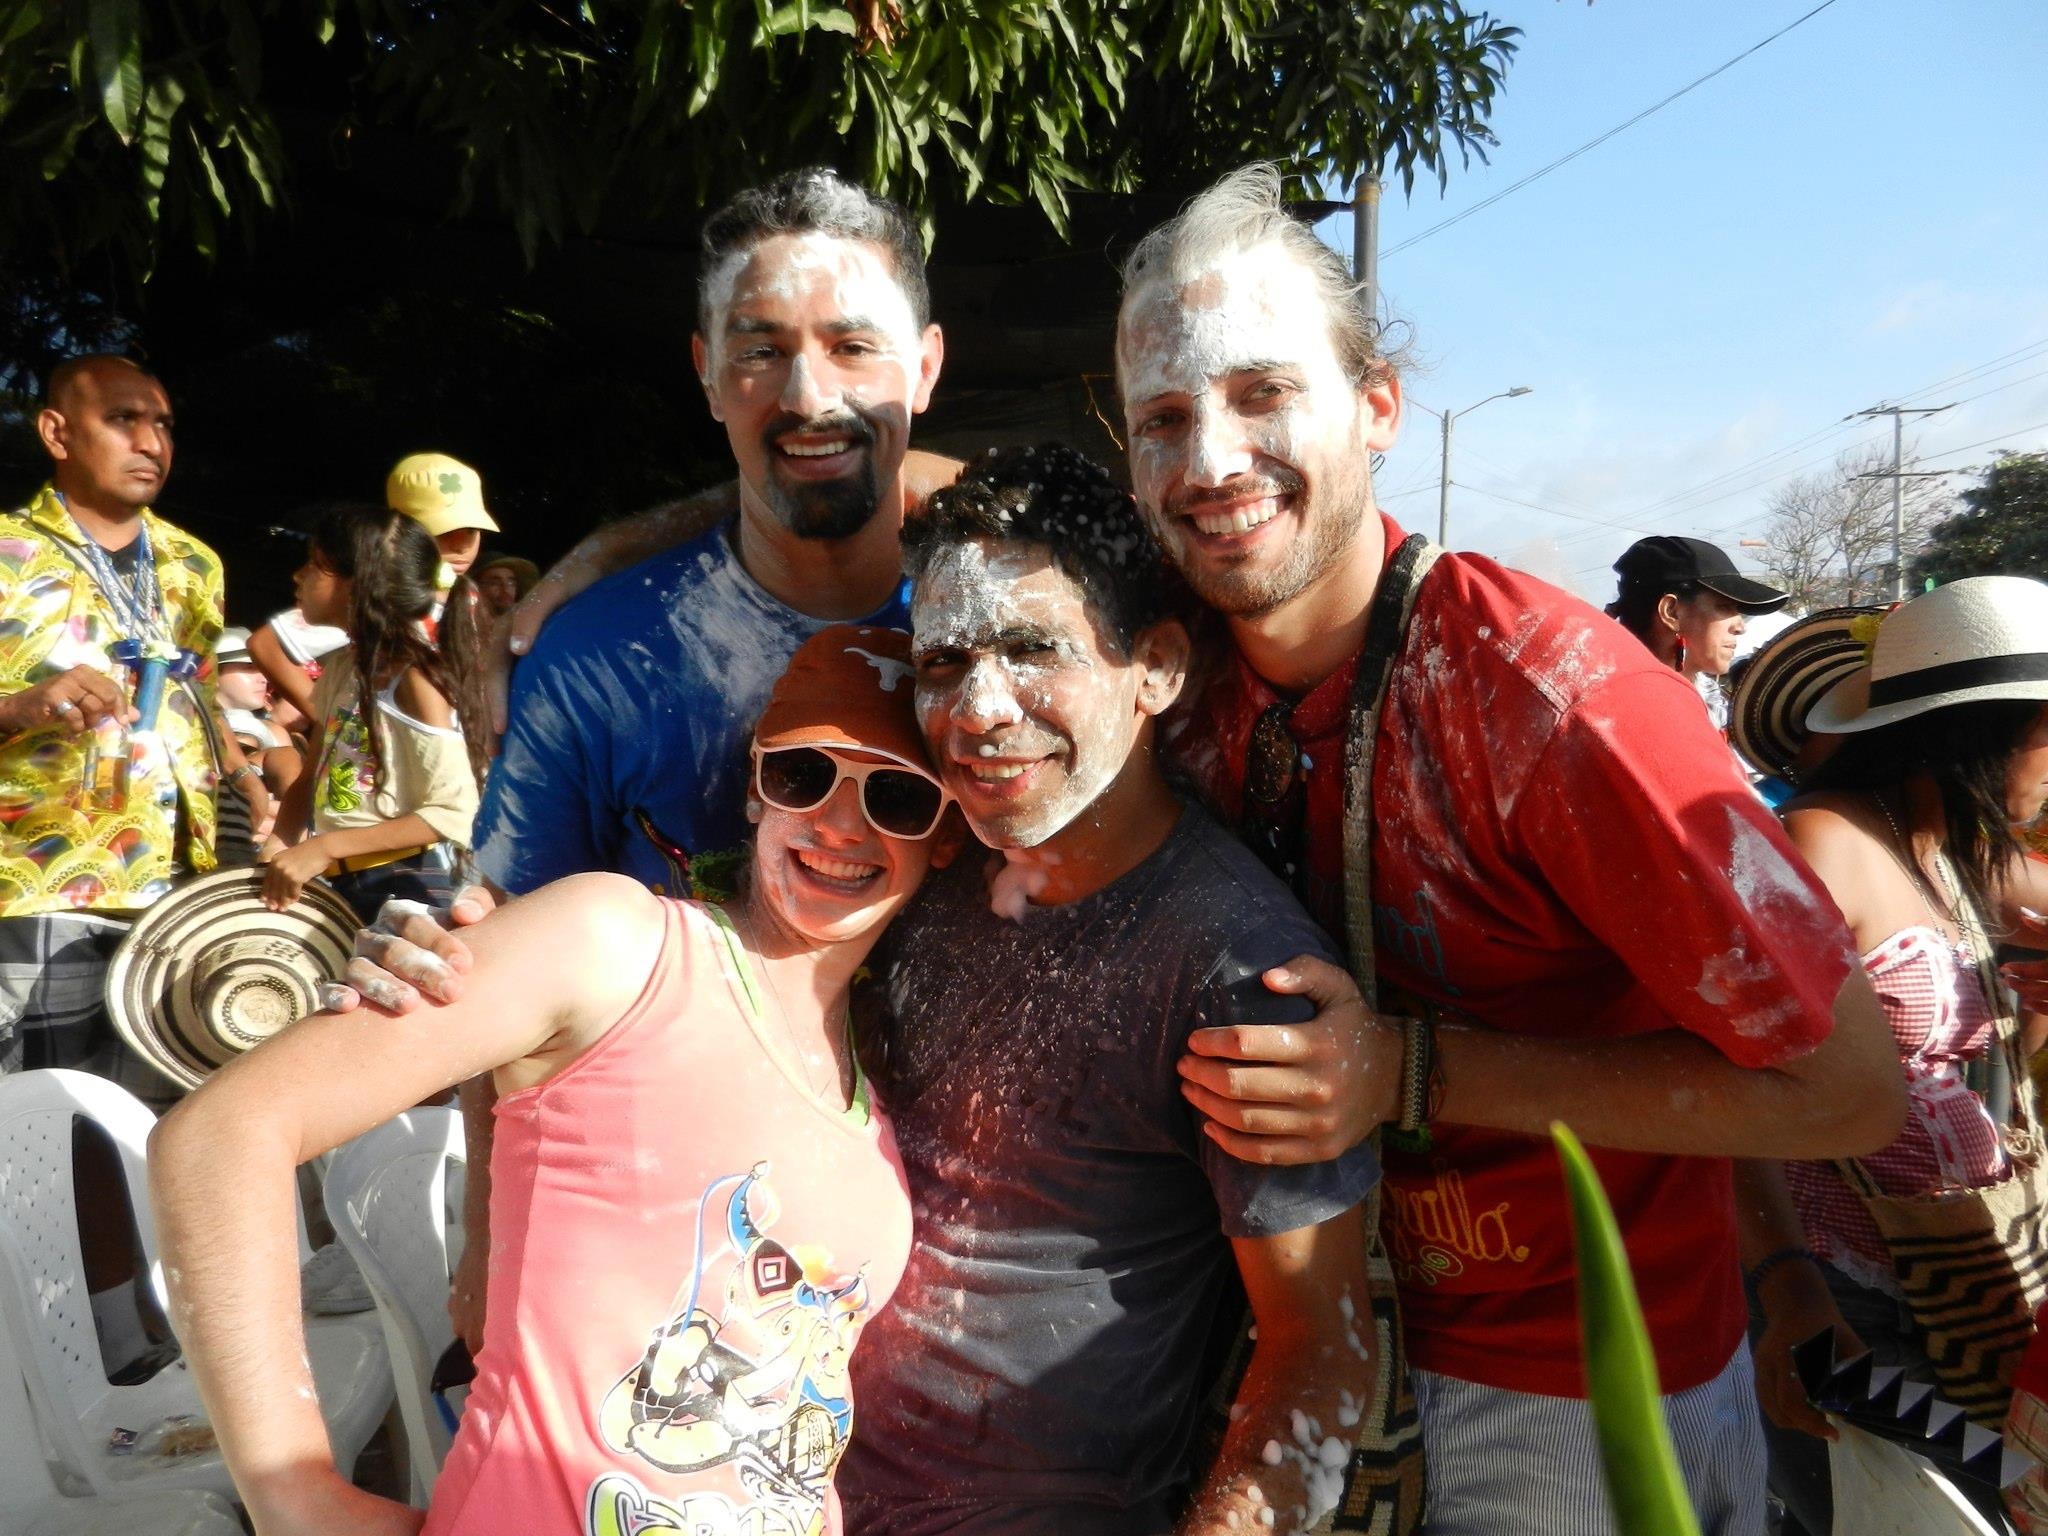 Covered in cornstarch, which is thrown and/or smeared on friends and strangers alike at all Carnaval events